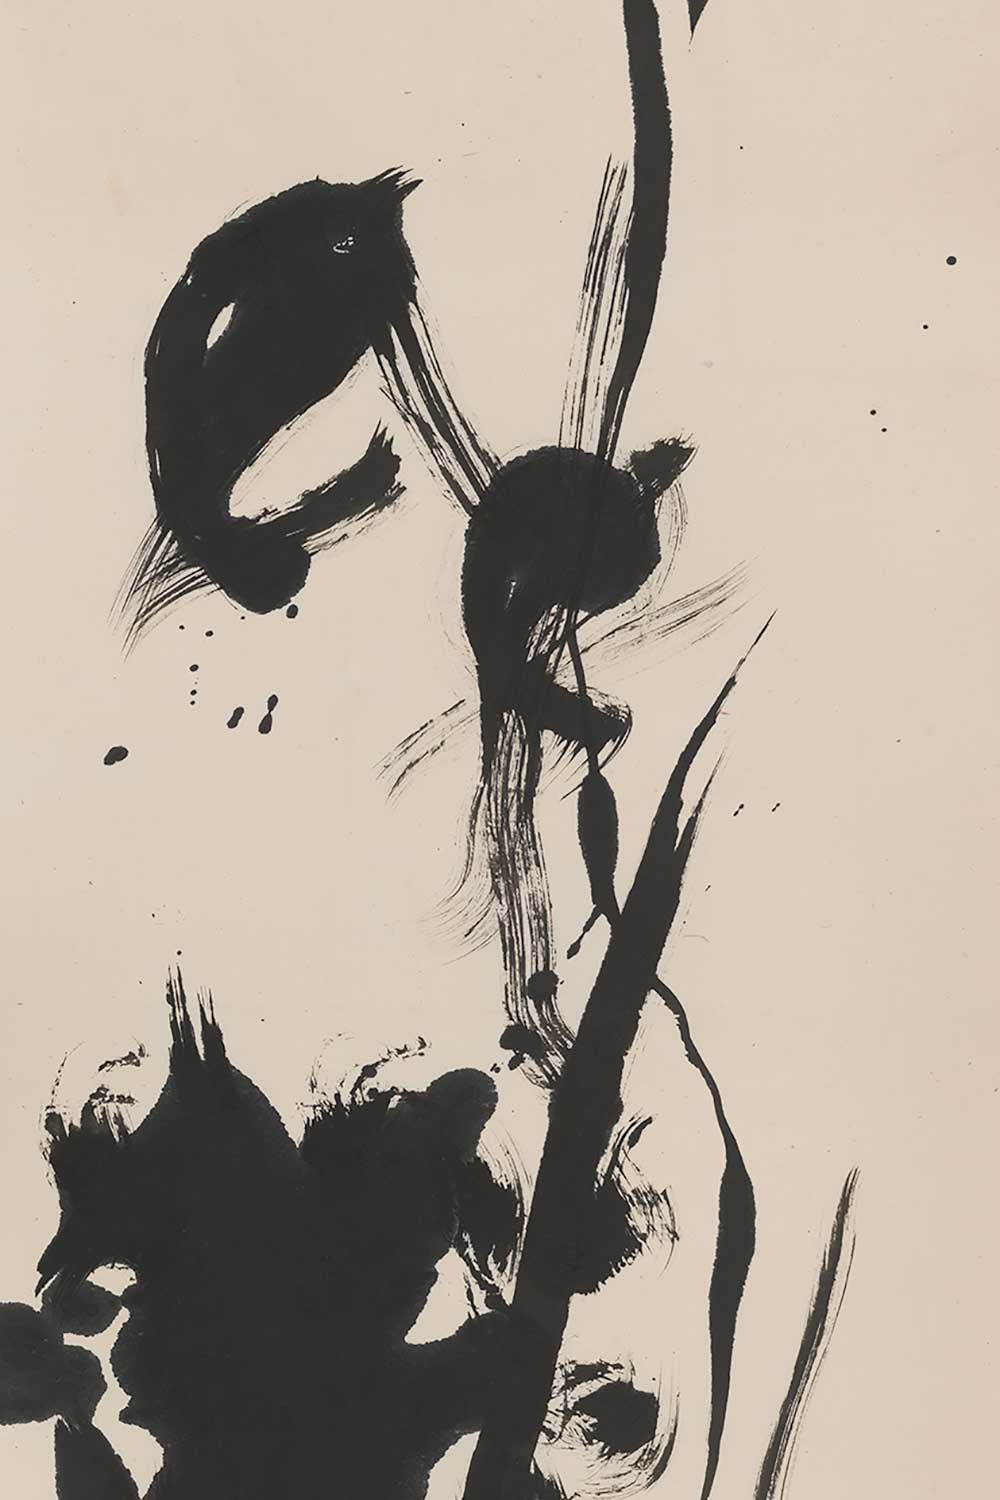 black abstract calligraphy on paper by Hasegawa